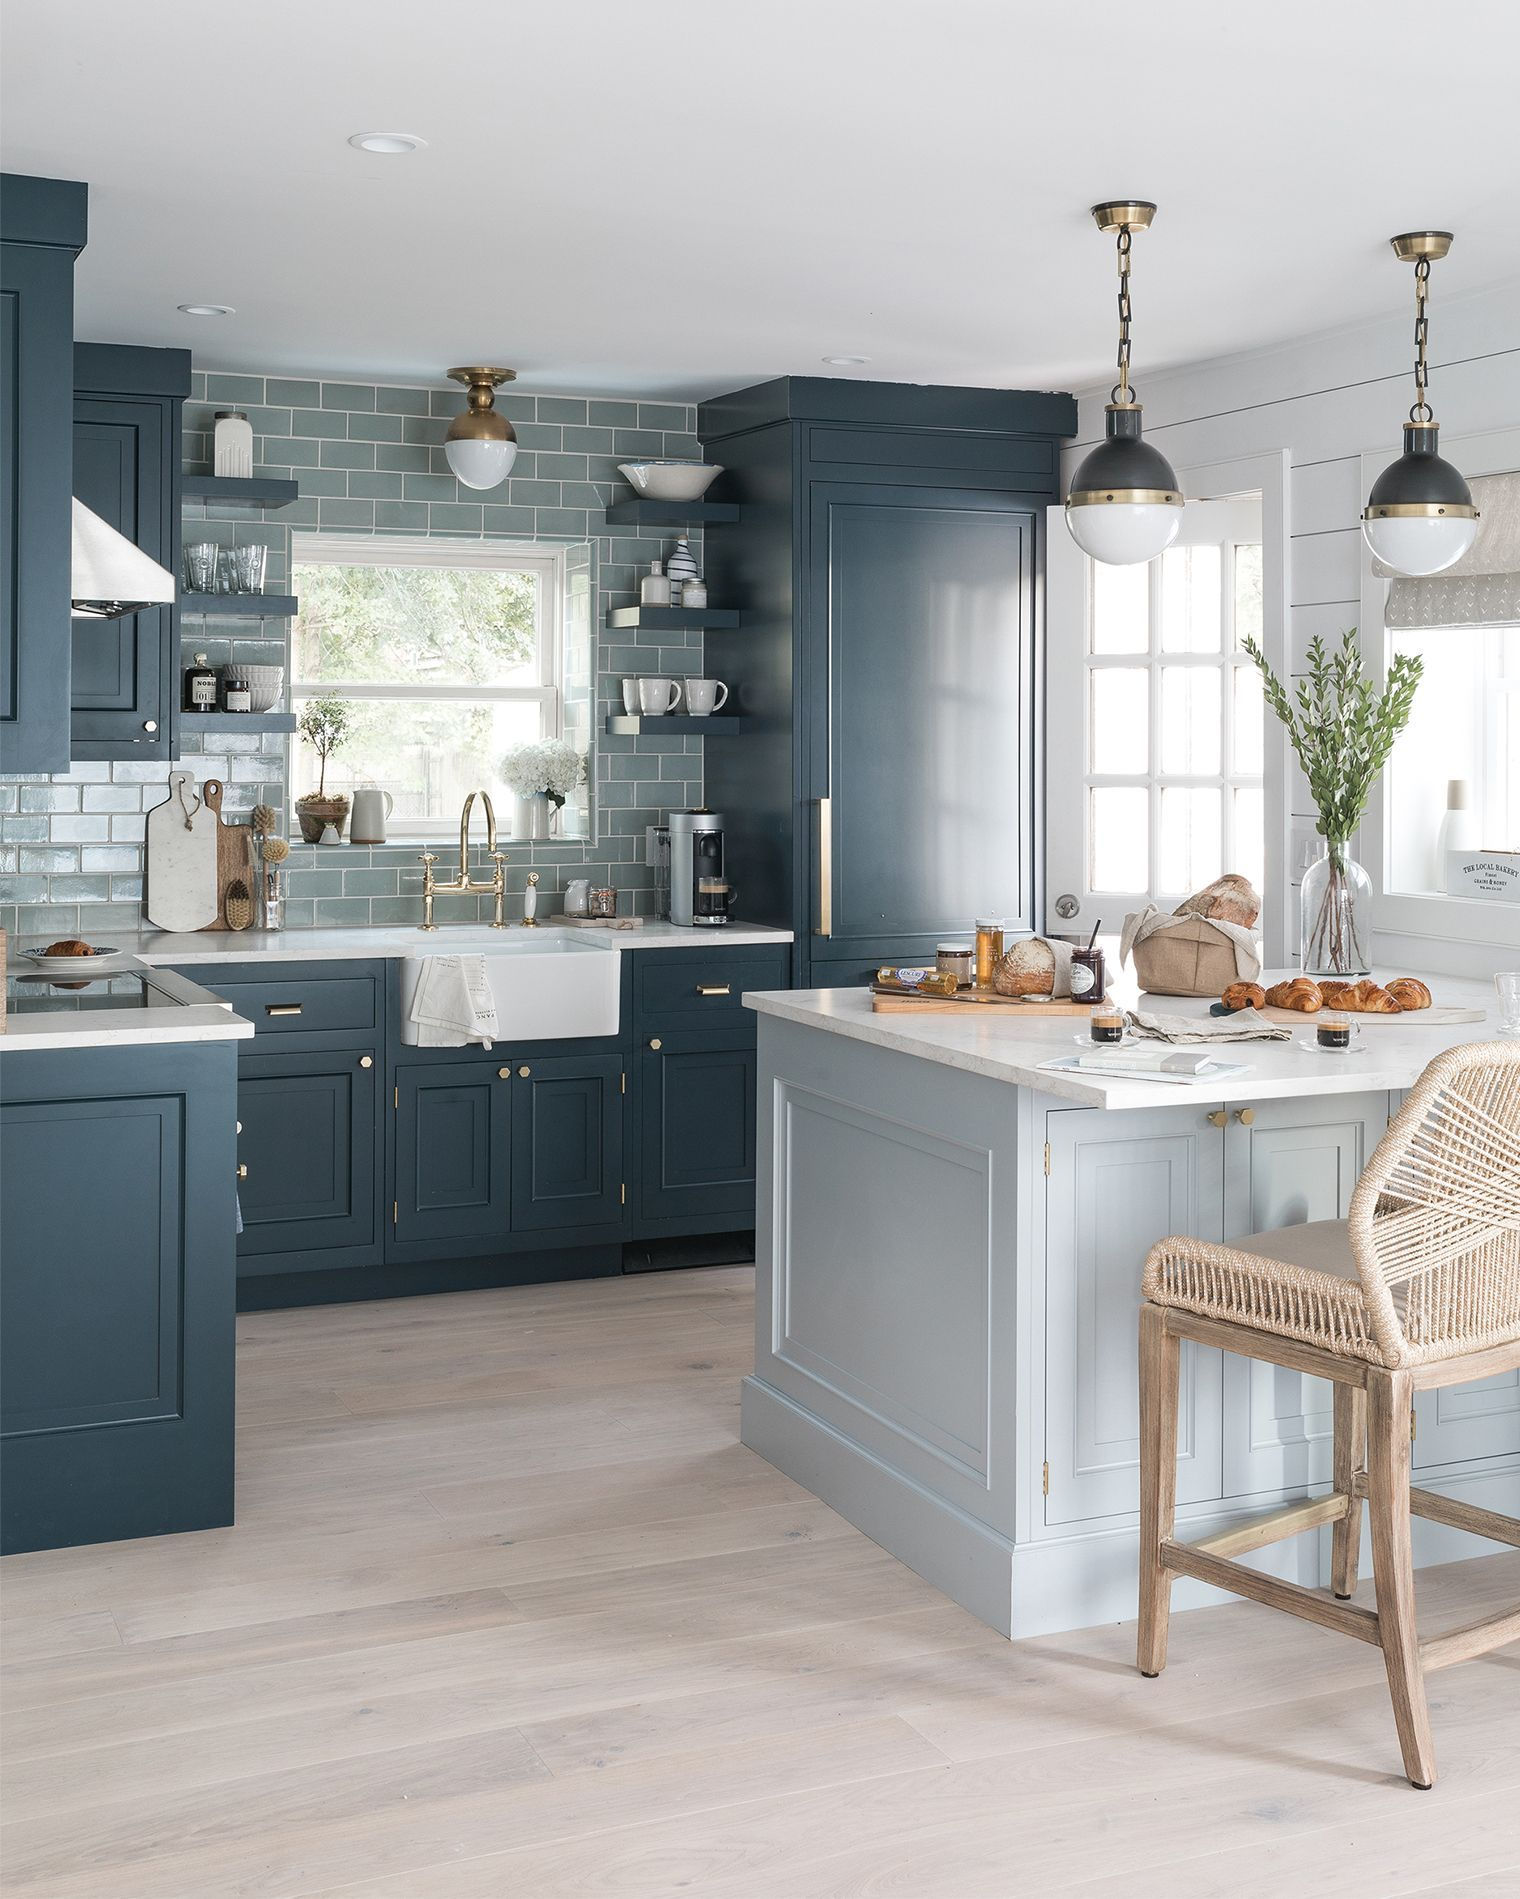 20 Insanely Gorgeous Kitchen Makeovers You Need To See To Believe In 2020 Blue Kitchen Designs Beach House Kitchens Kitchen Interior